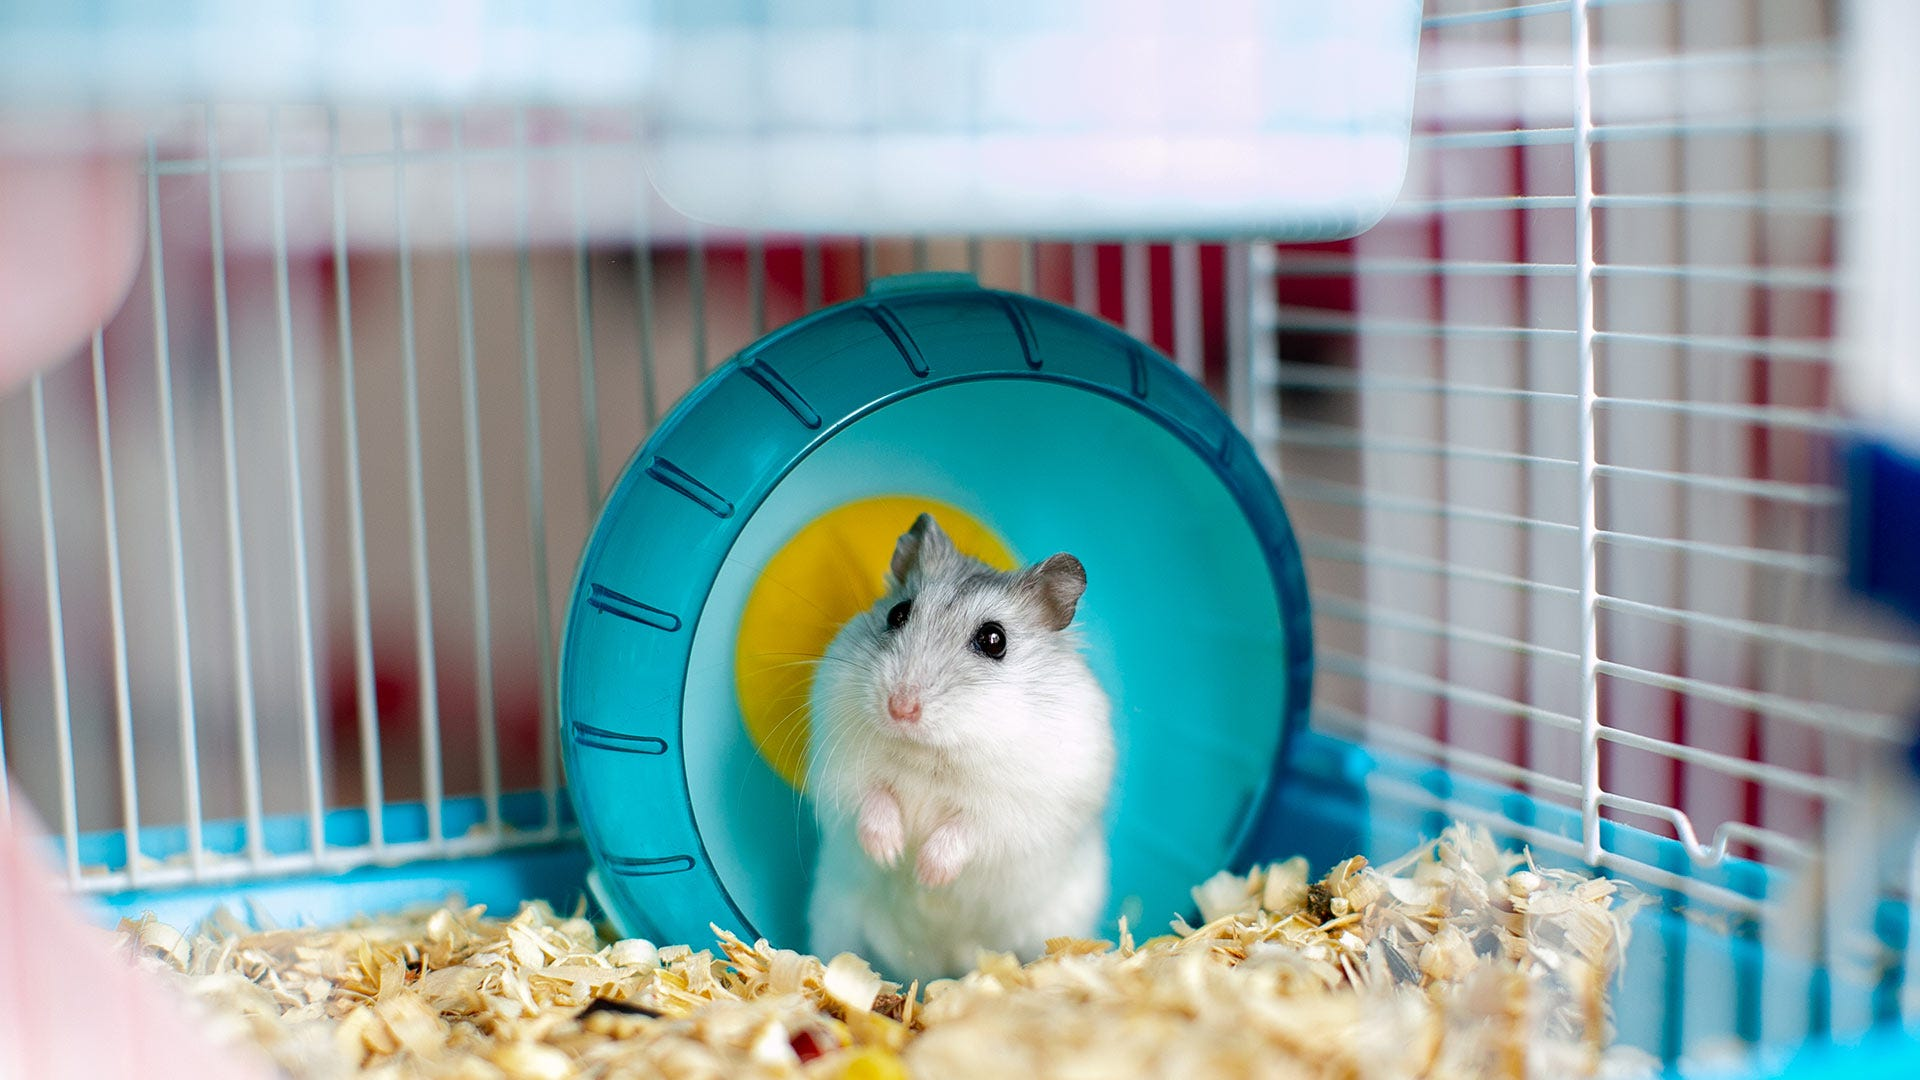 A light-colored hamster looks curiously at the camera from inside a wire cage.